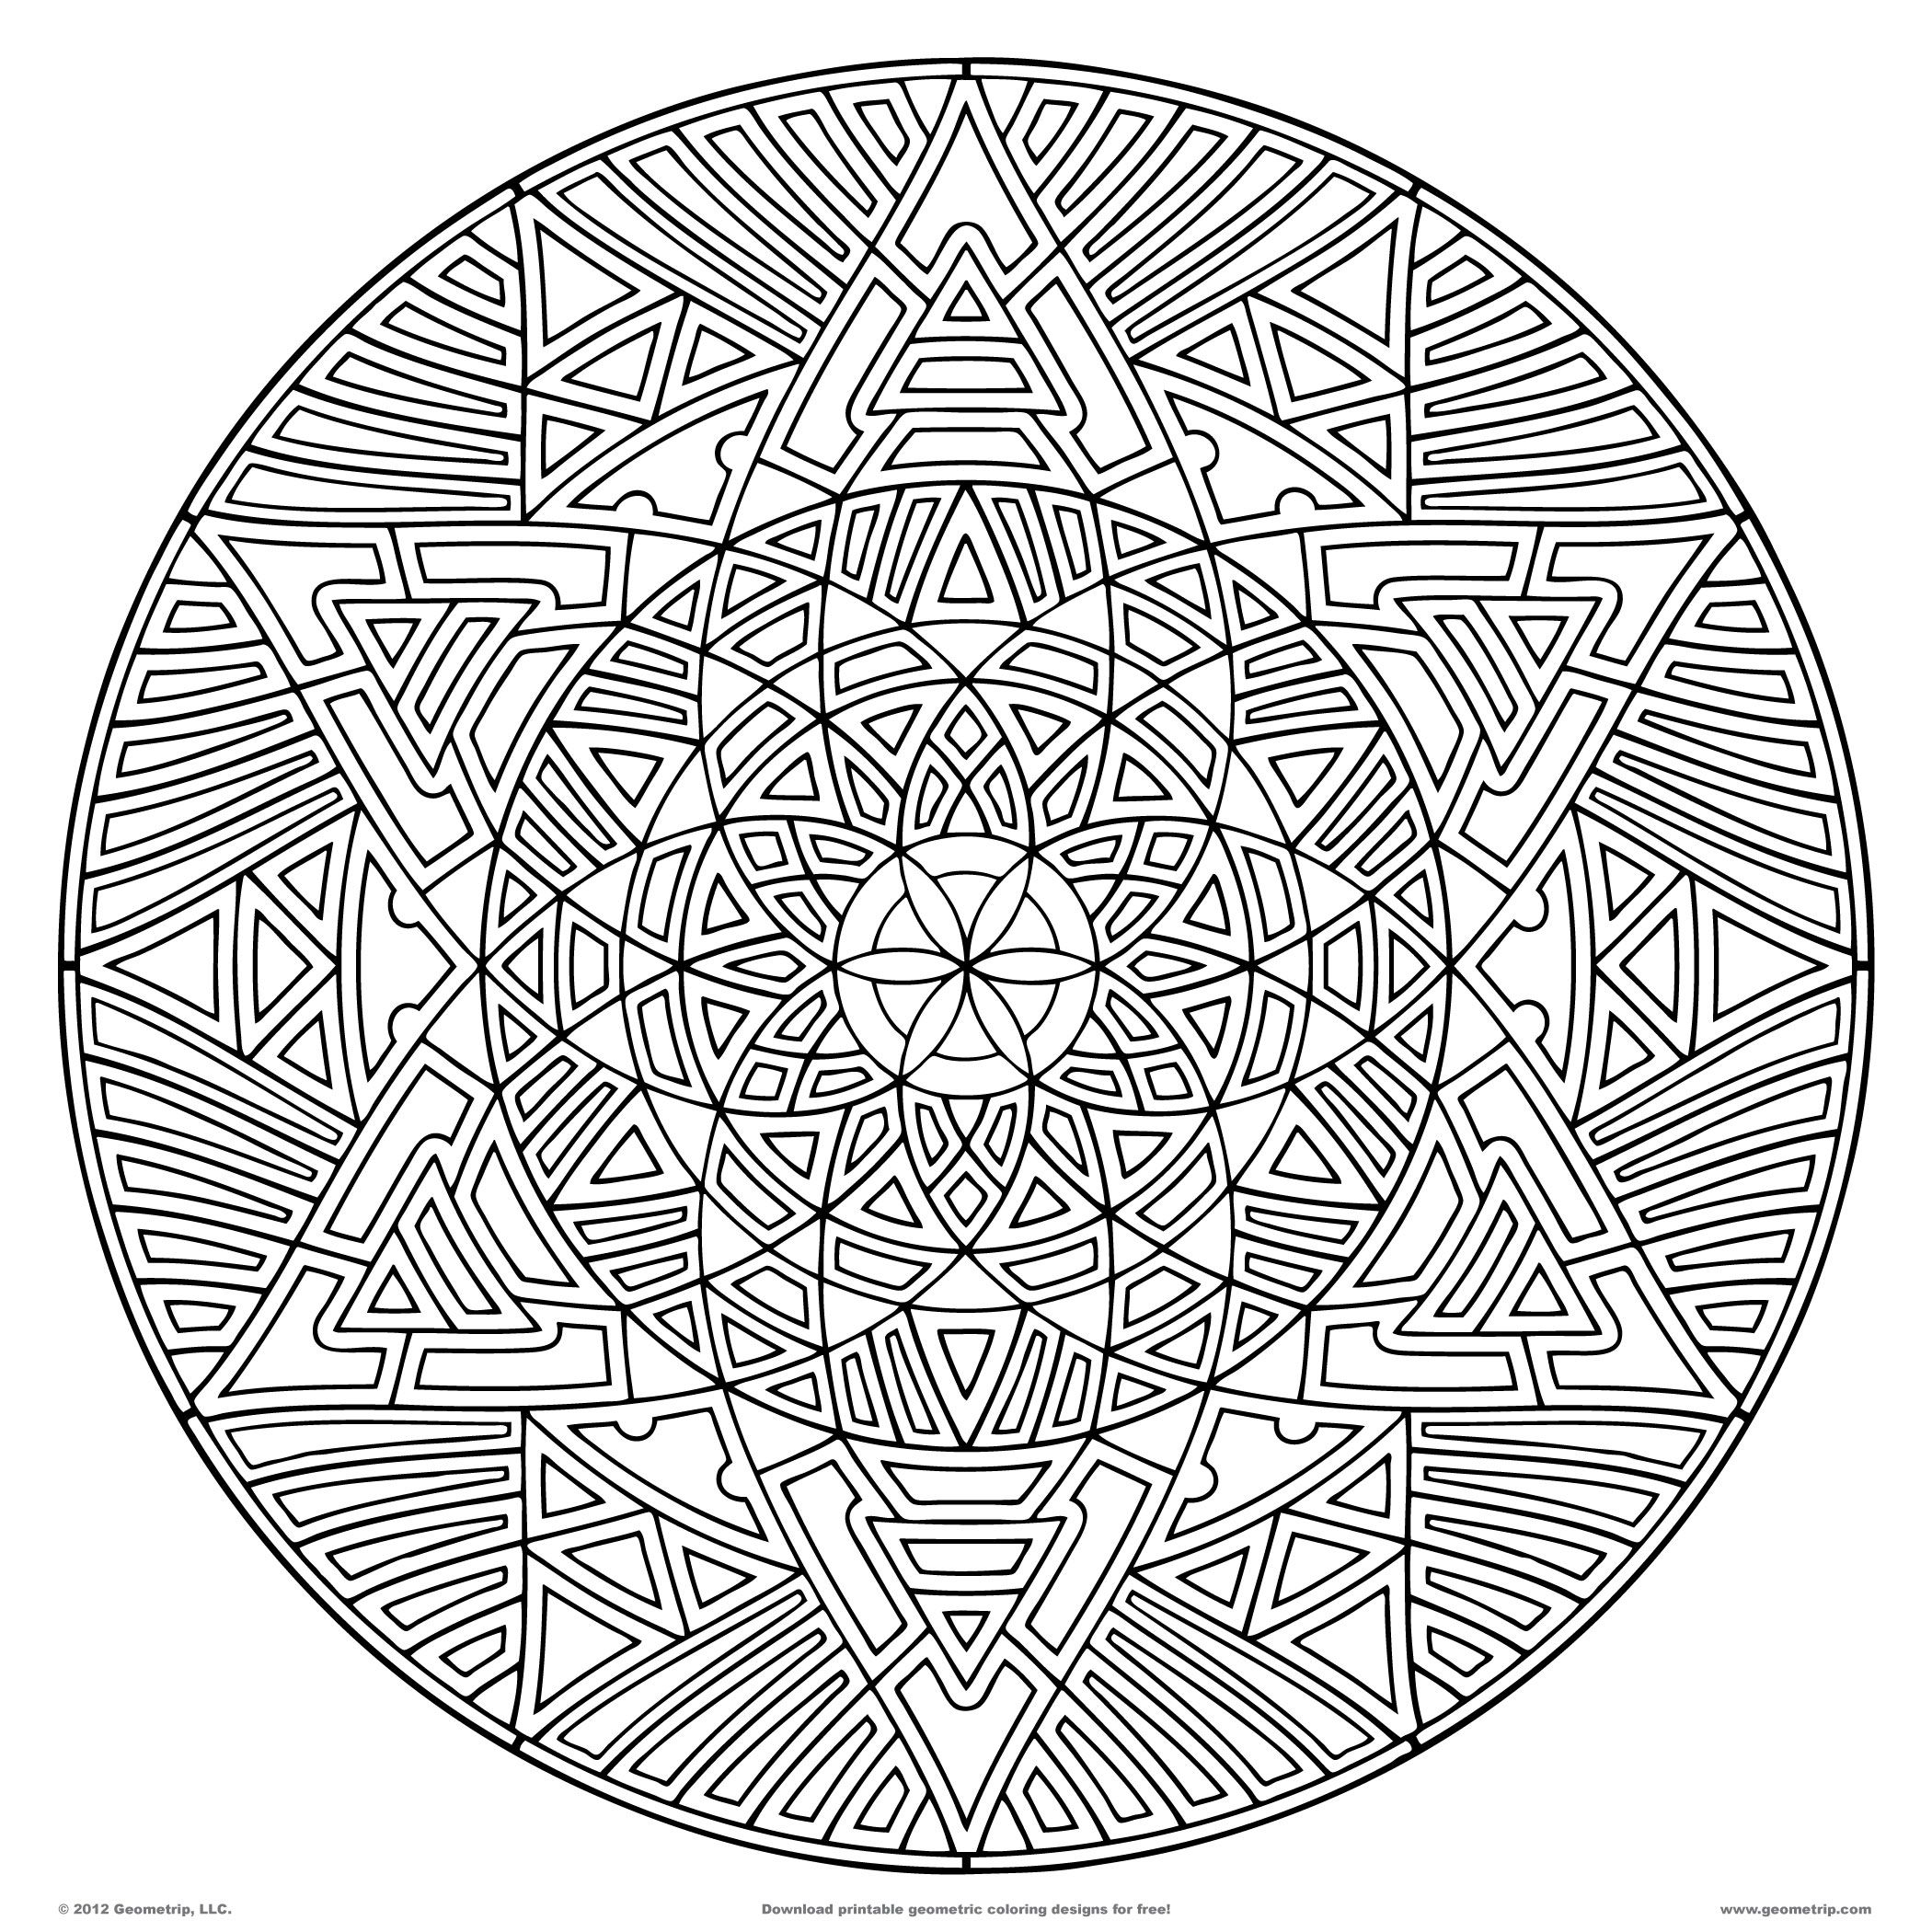 Geometric coloring pages for adults printable download Geometric coloring books for adults